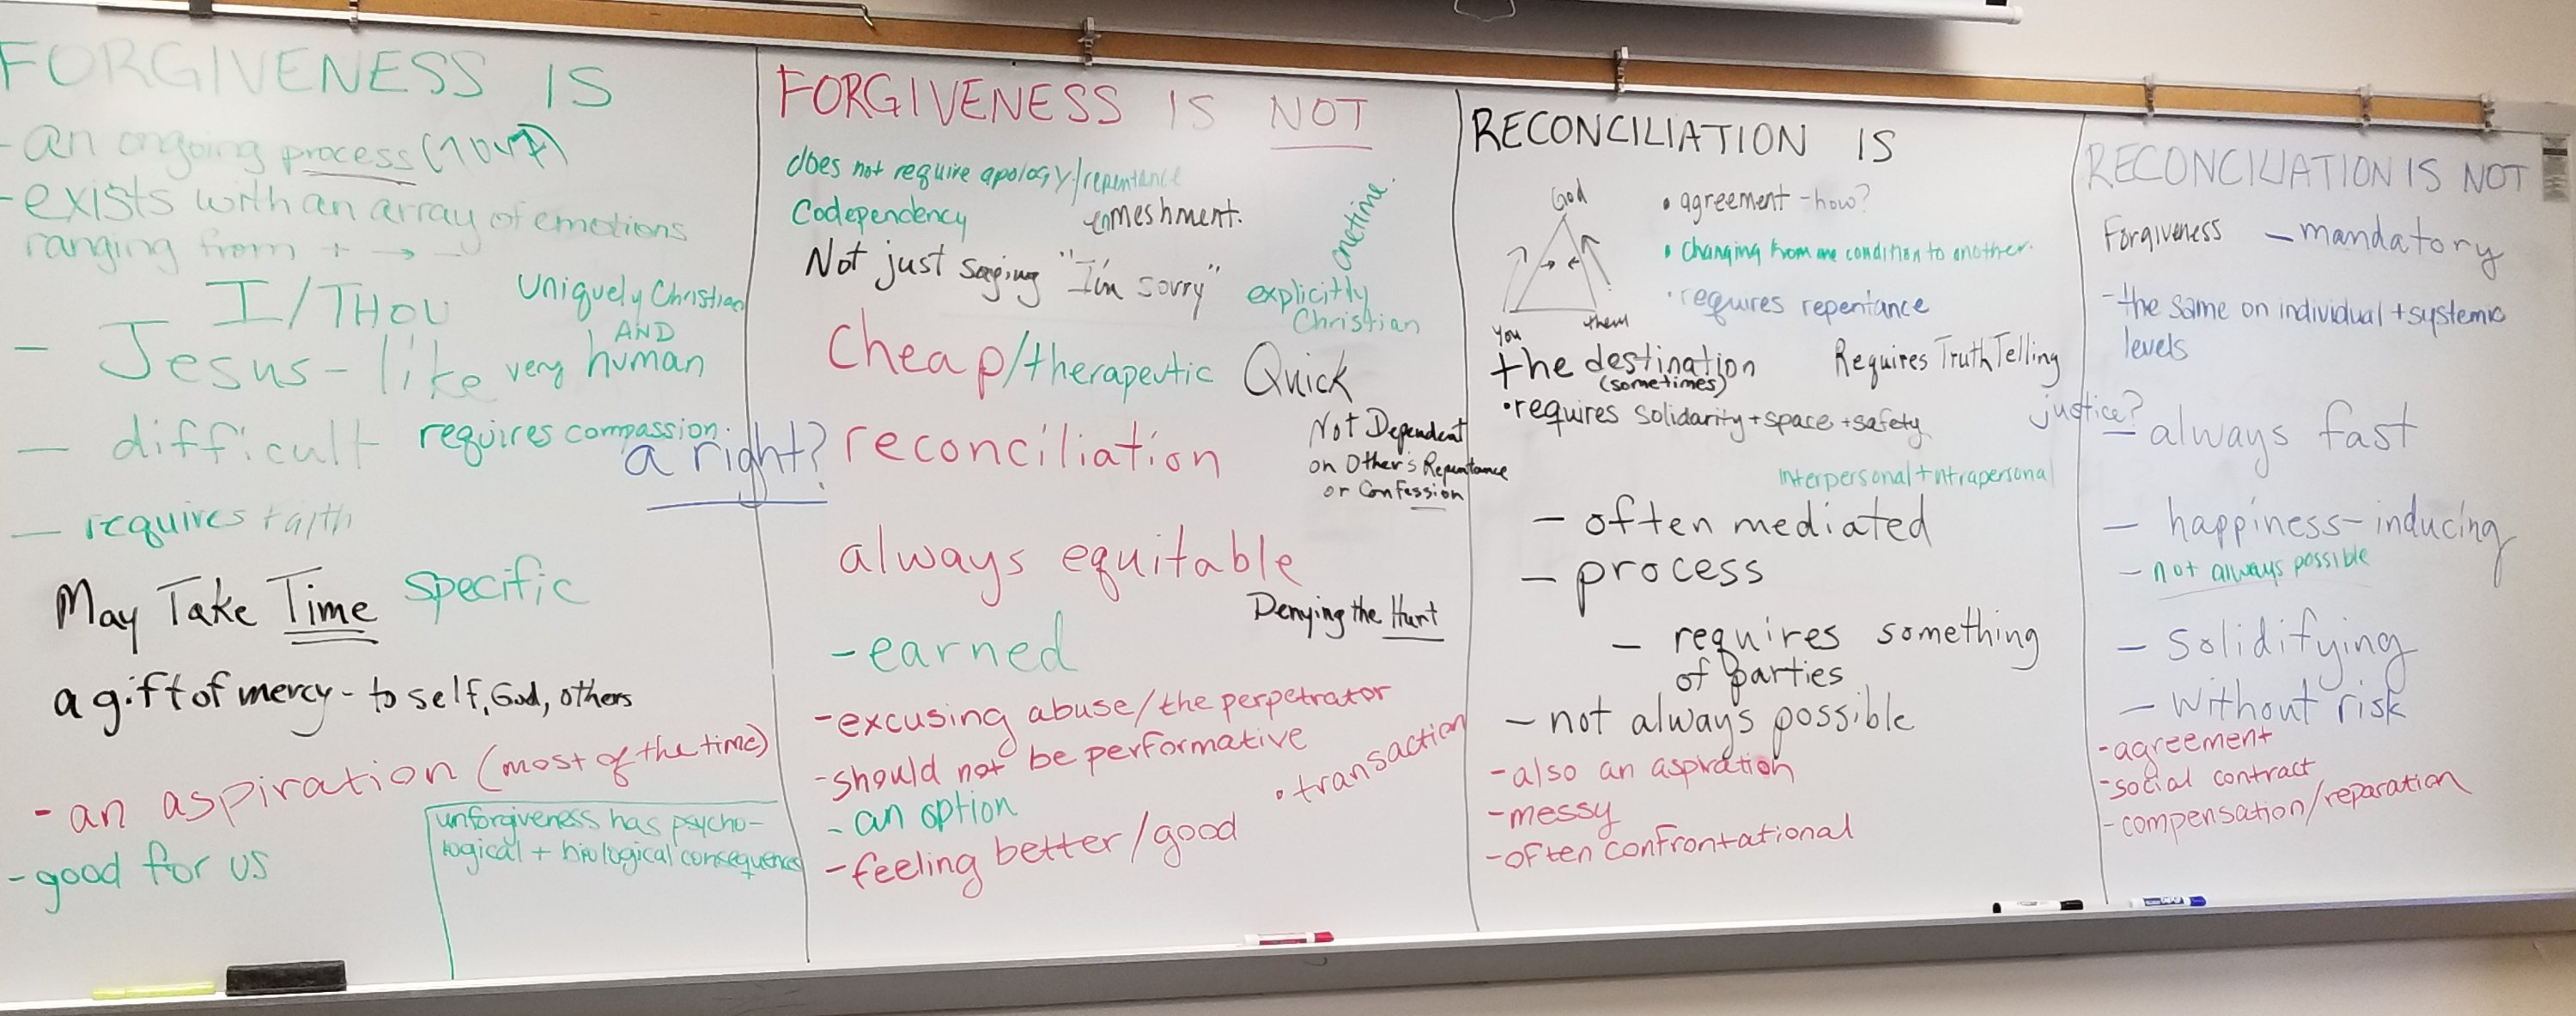 Blackboard Outline Forgiveness & Reconcilliation